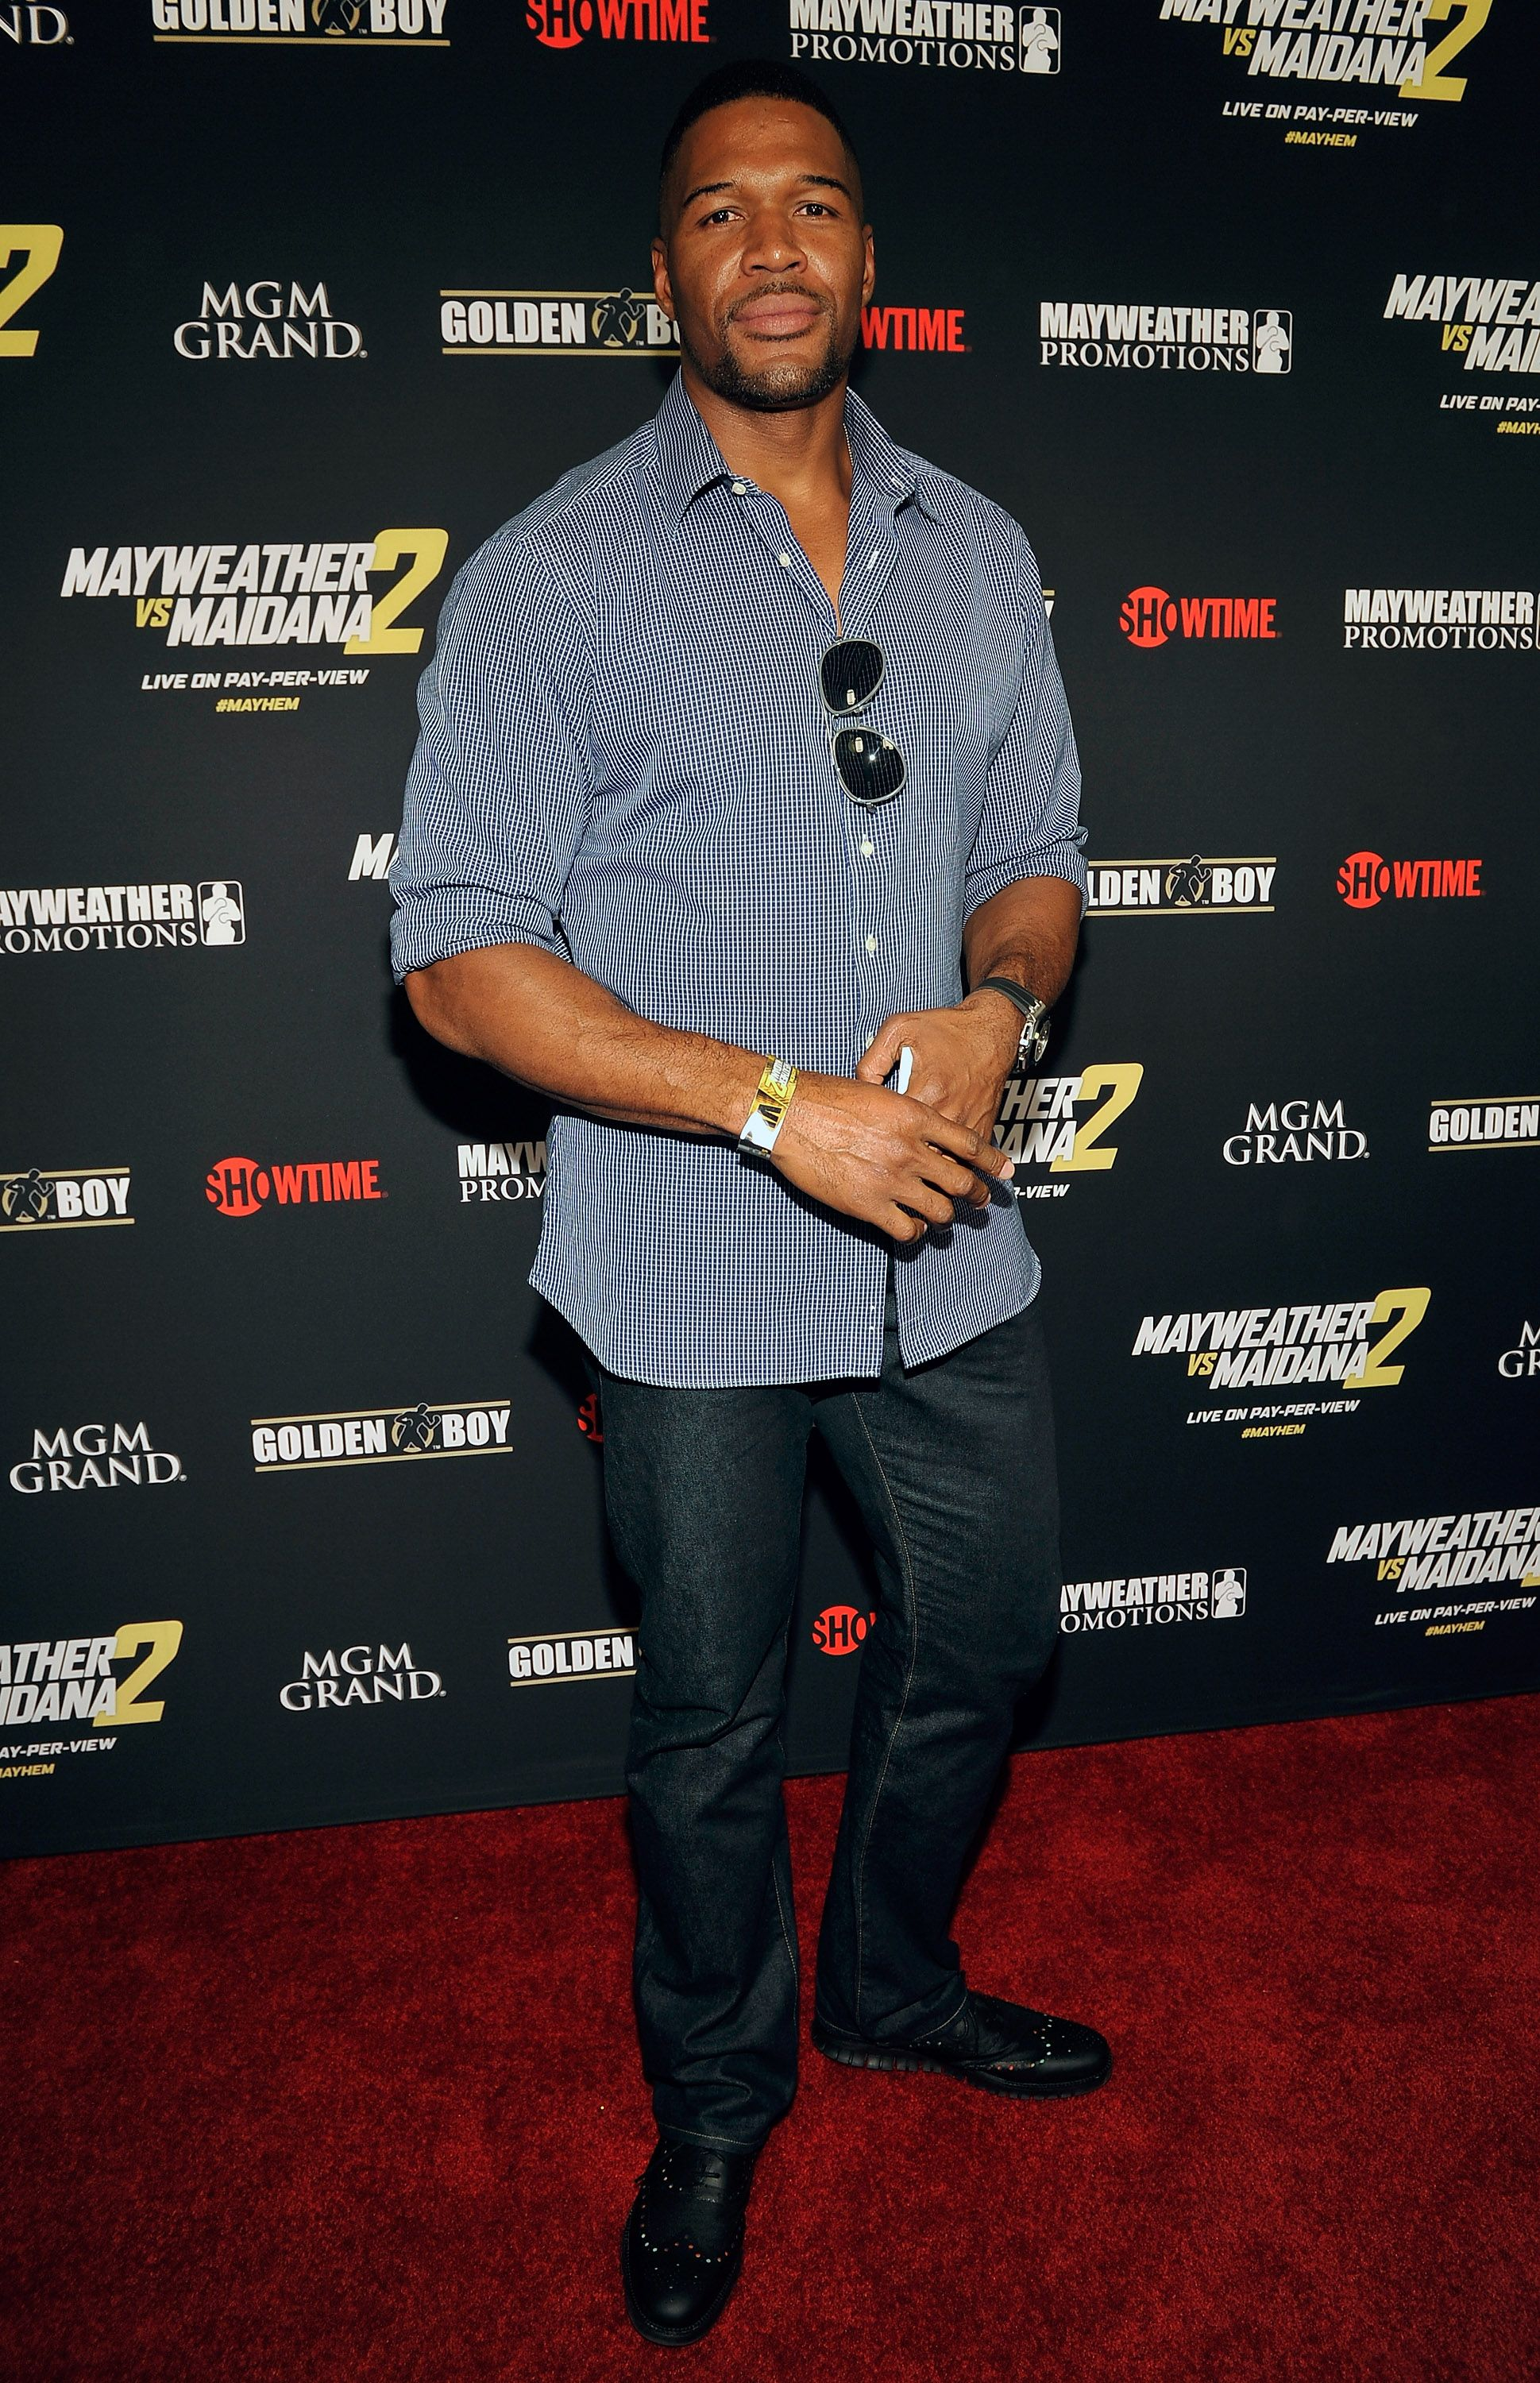 """Michael Strahan arriving at Showtime's VIP prefight party for """"Mayhem: Mayweather vs. Maidana 2"""" on September 13, 2014 in Las Vegas. 